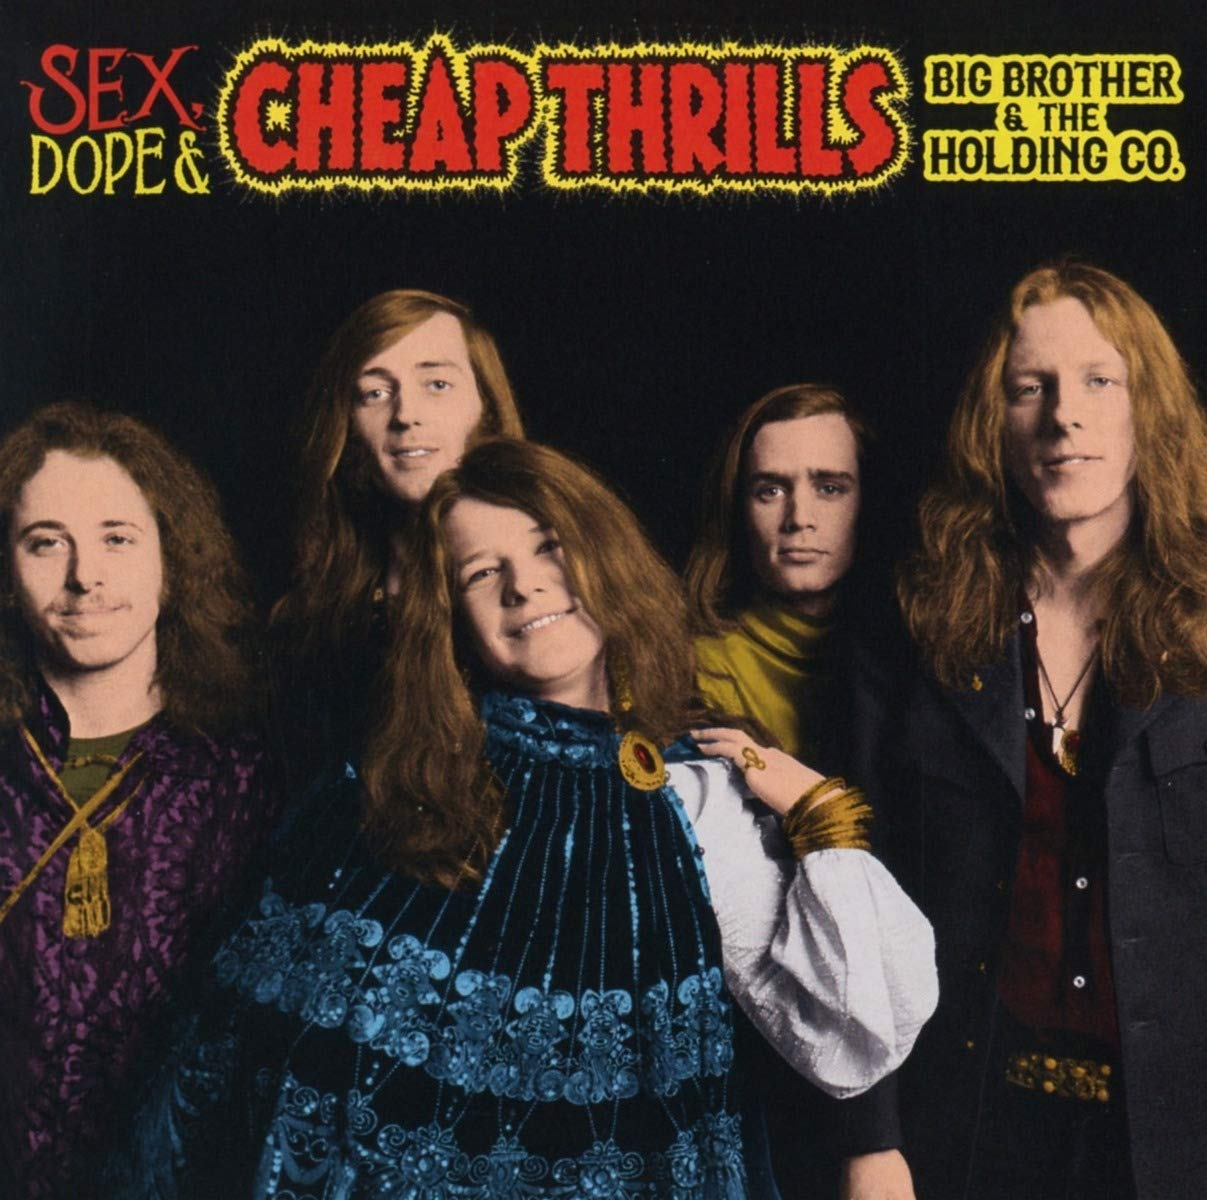 BIG BROTHER & HOLDING COMPANY - SEX DOPE & CHEAP THRILLS (2 CD)